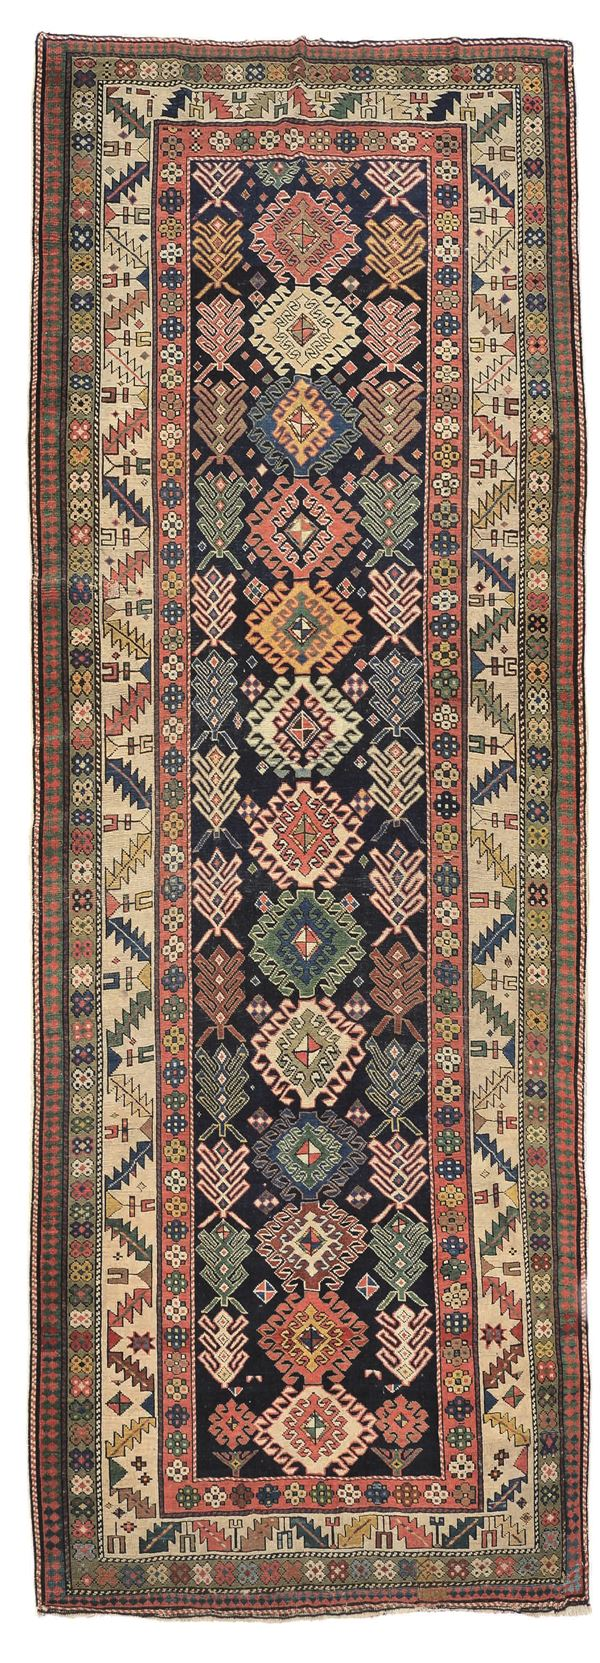 Kasak long rug, late 19thcentury. Overal very good condition.